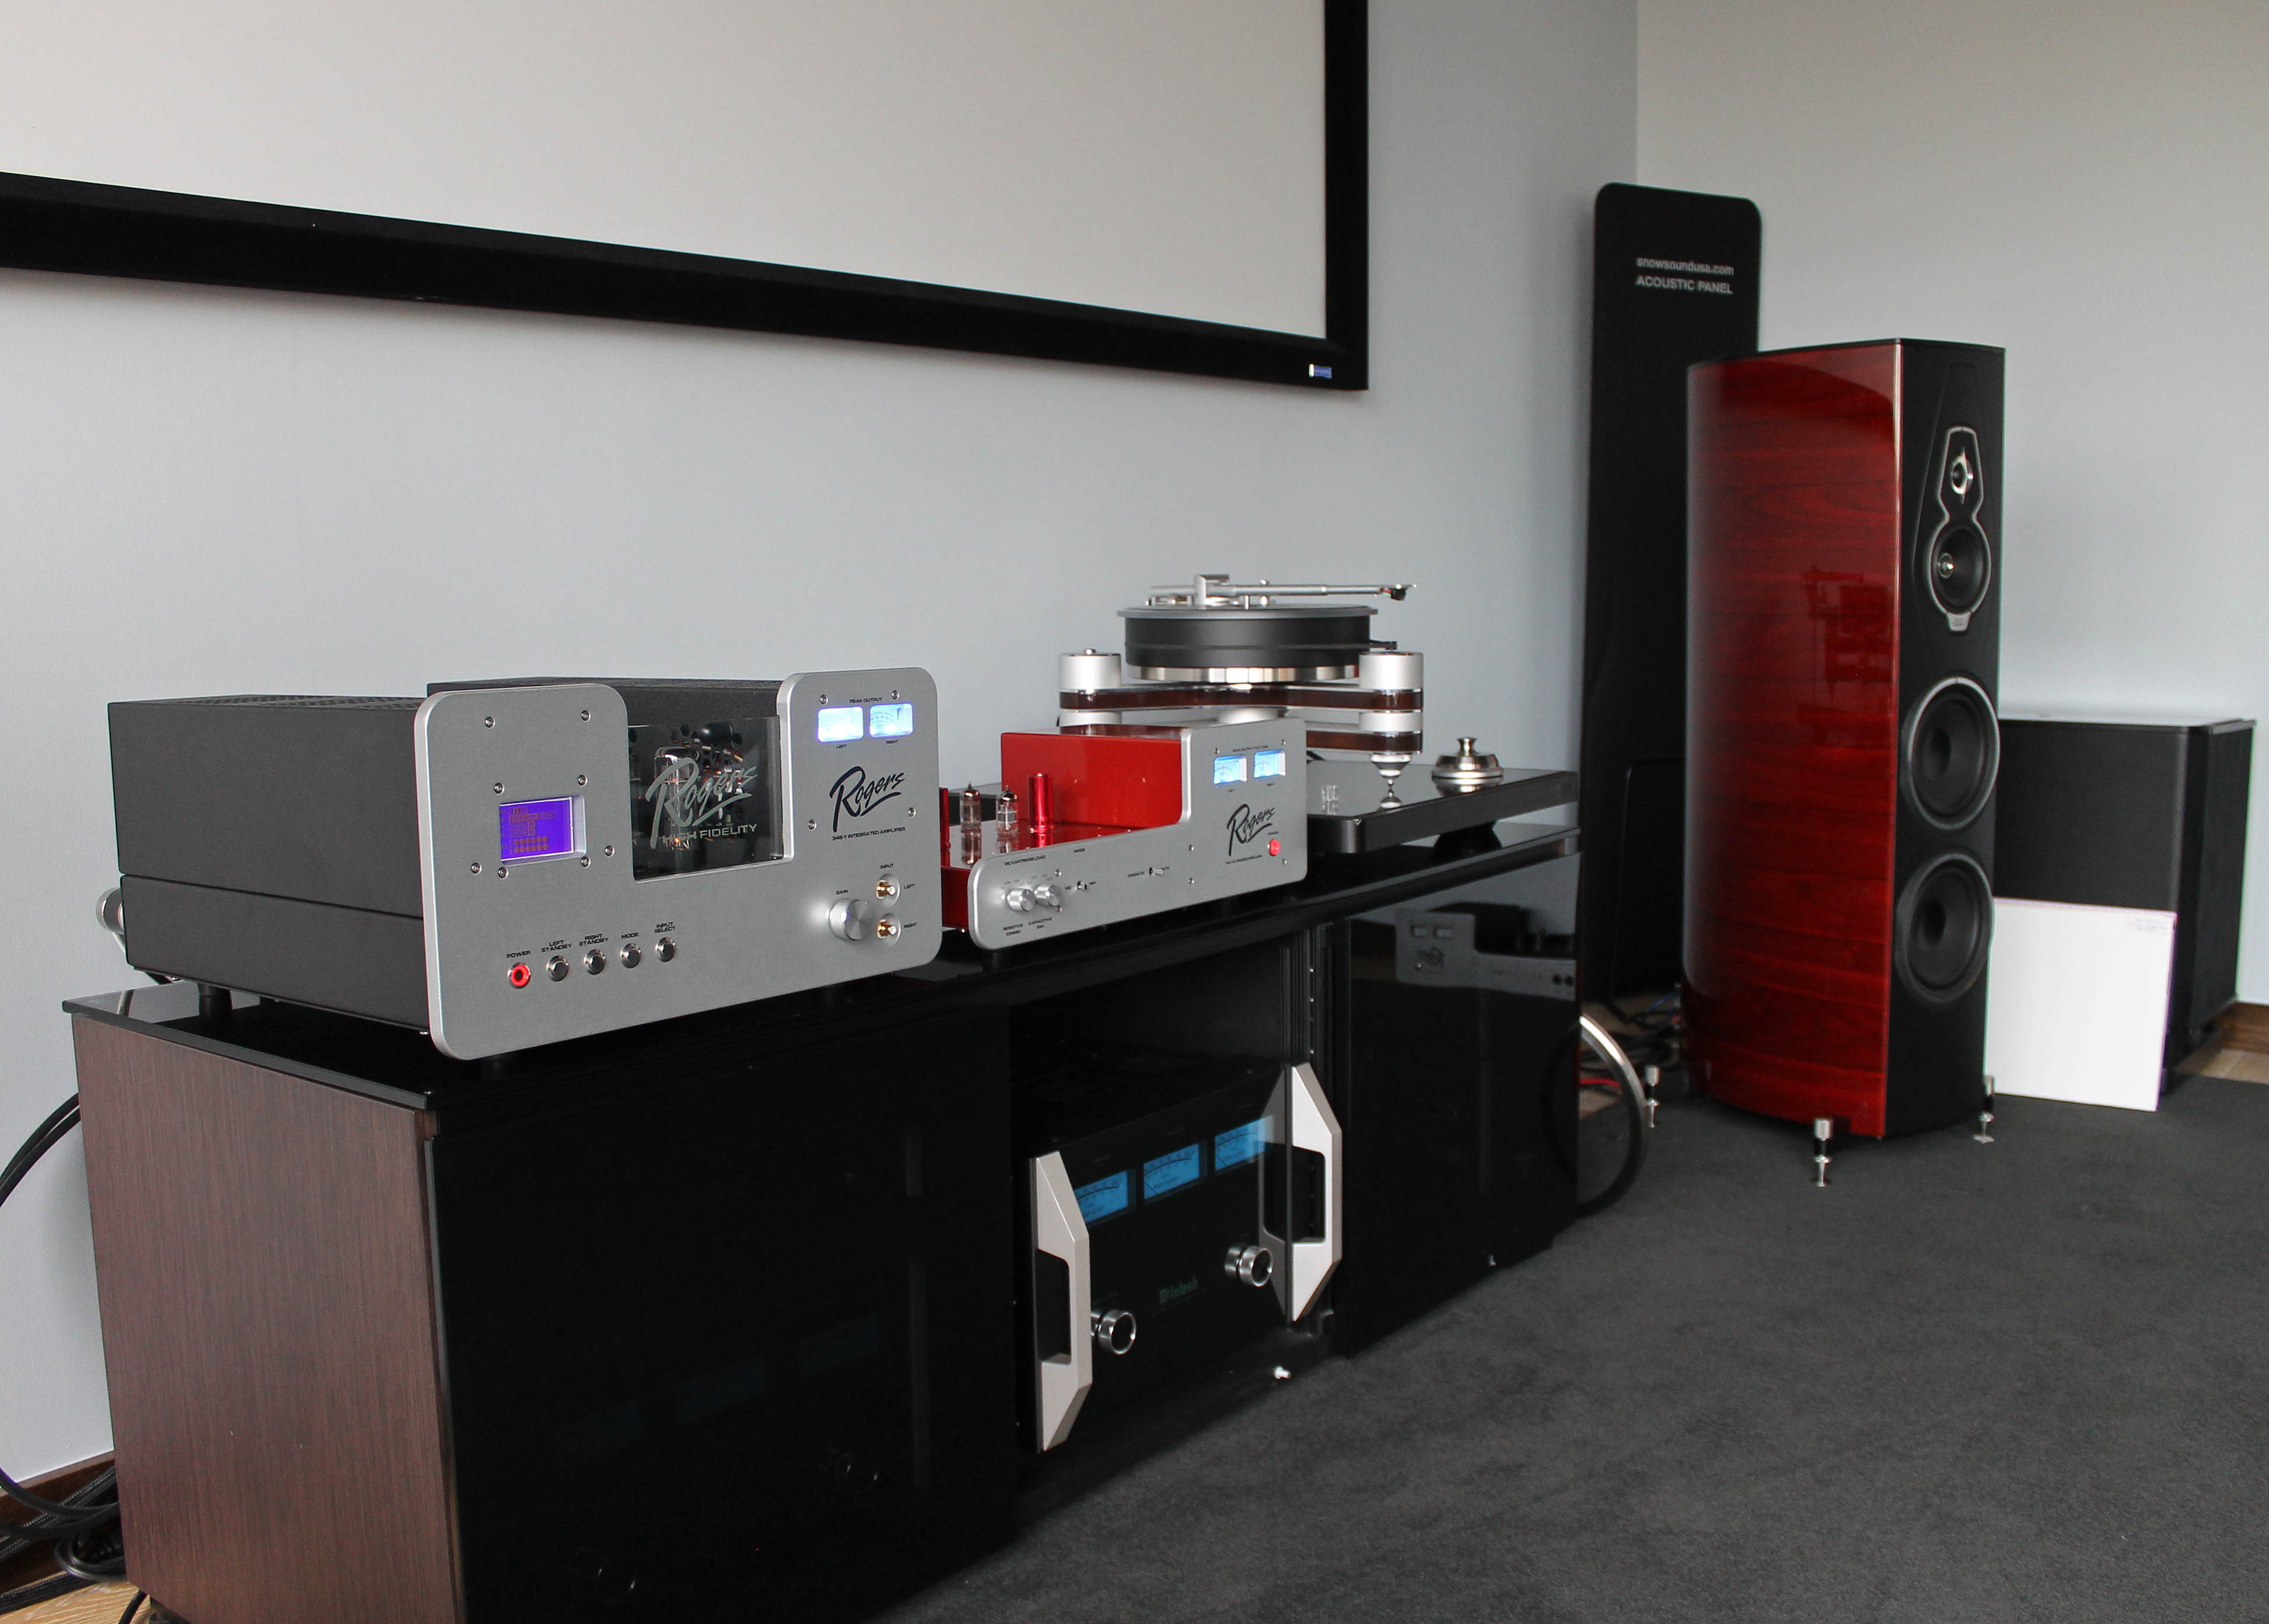 News Simple High Quality Tube Amplifier Class A Their Dedicated Sales Staff Headed By Owner Larry Marcus Is Committed To Helping Customers Build The Very Best Systems According Wants Needs